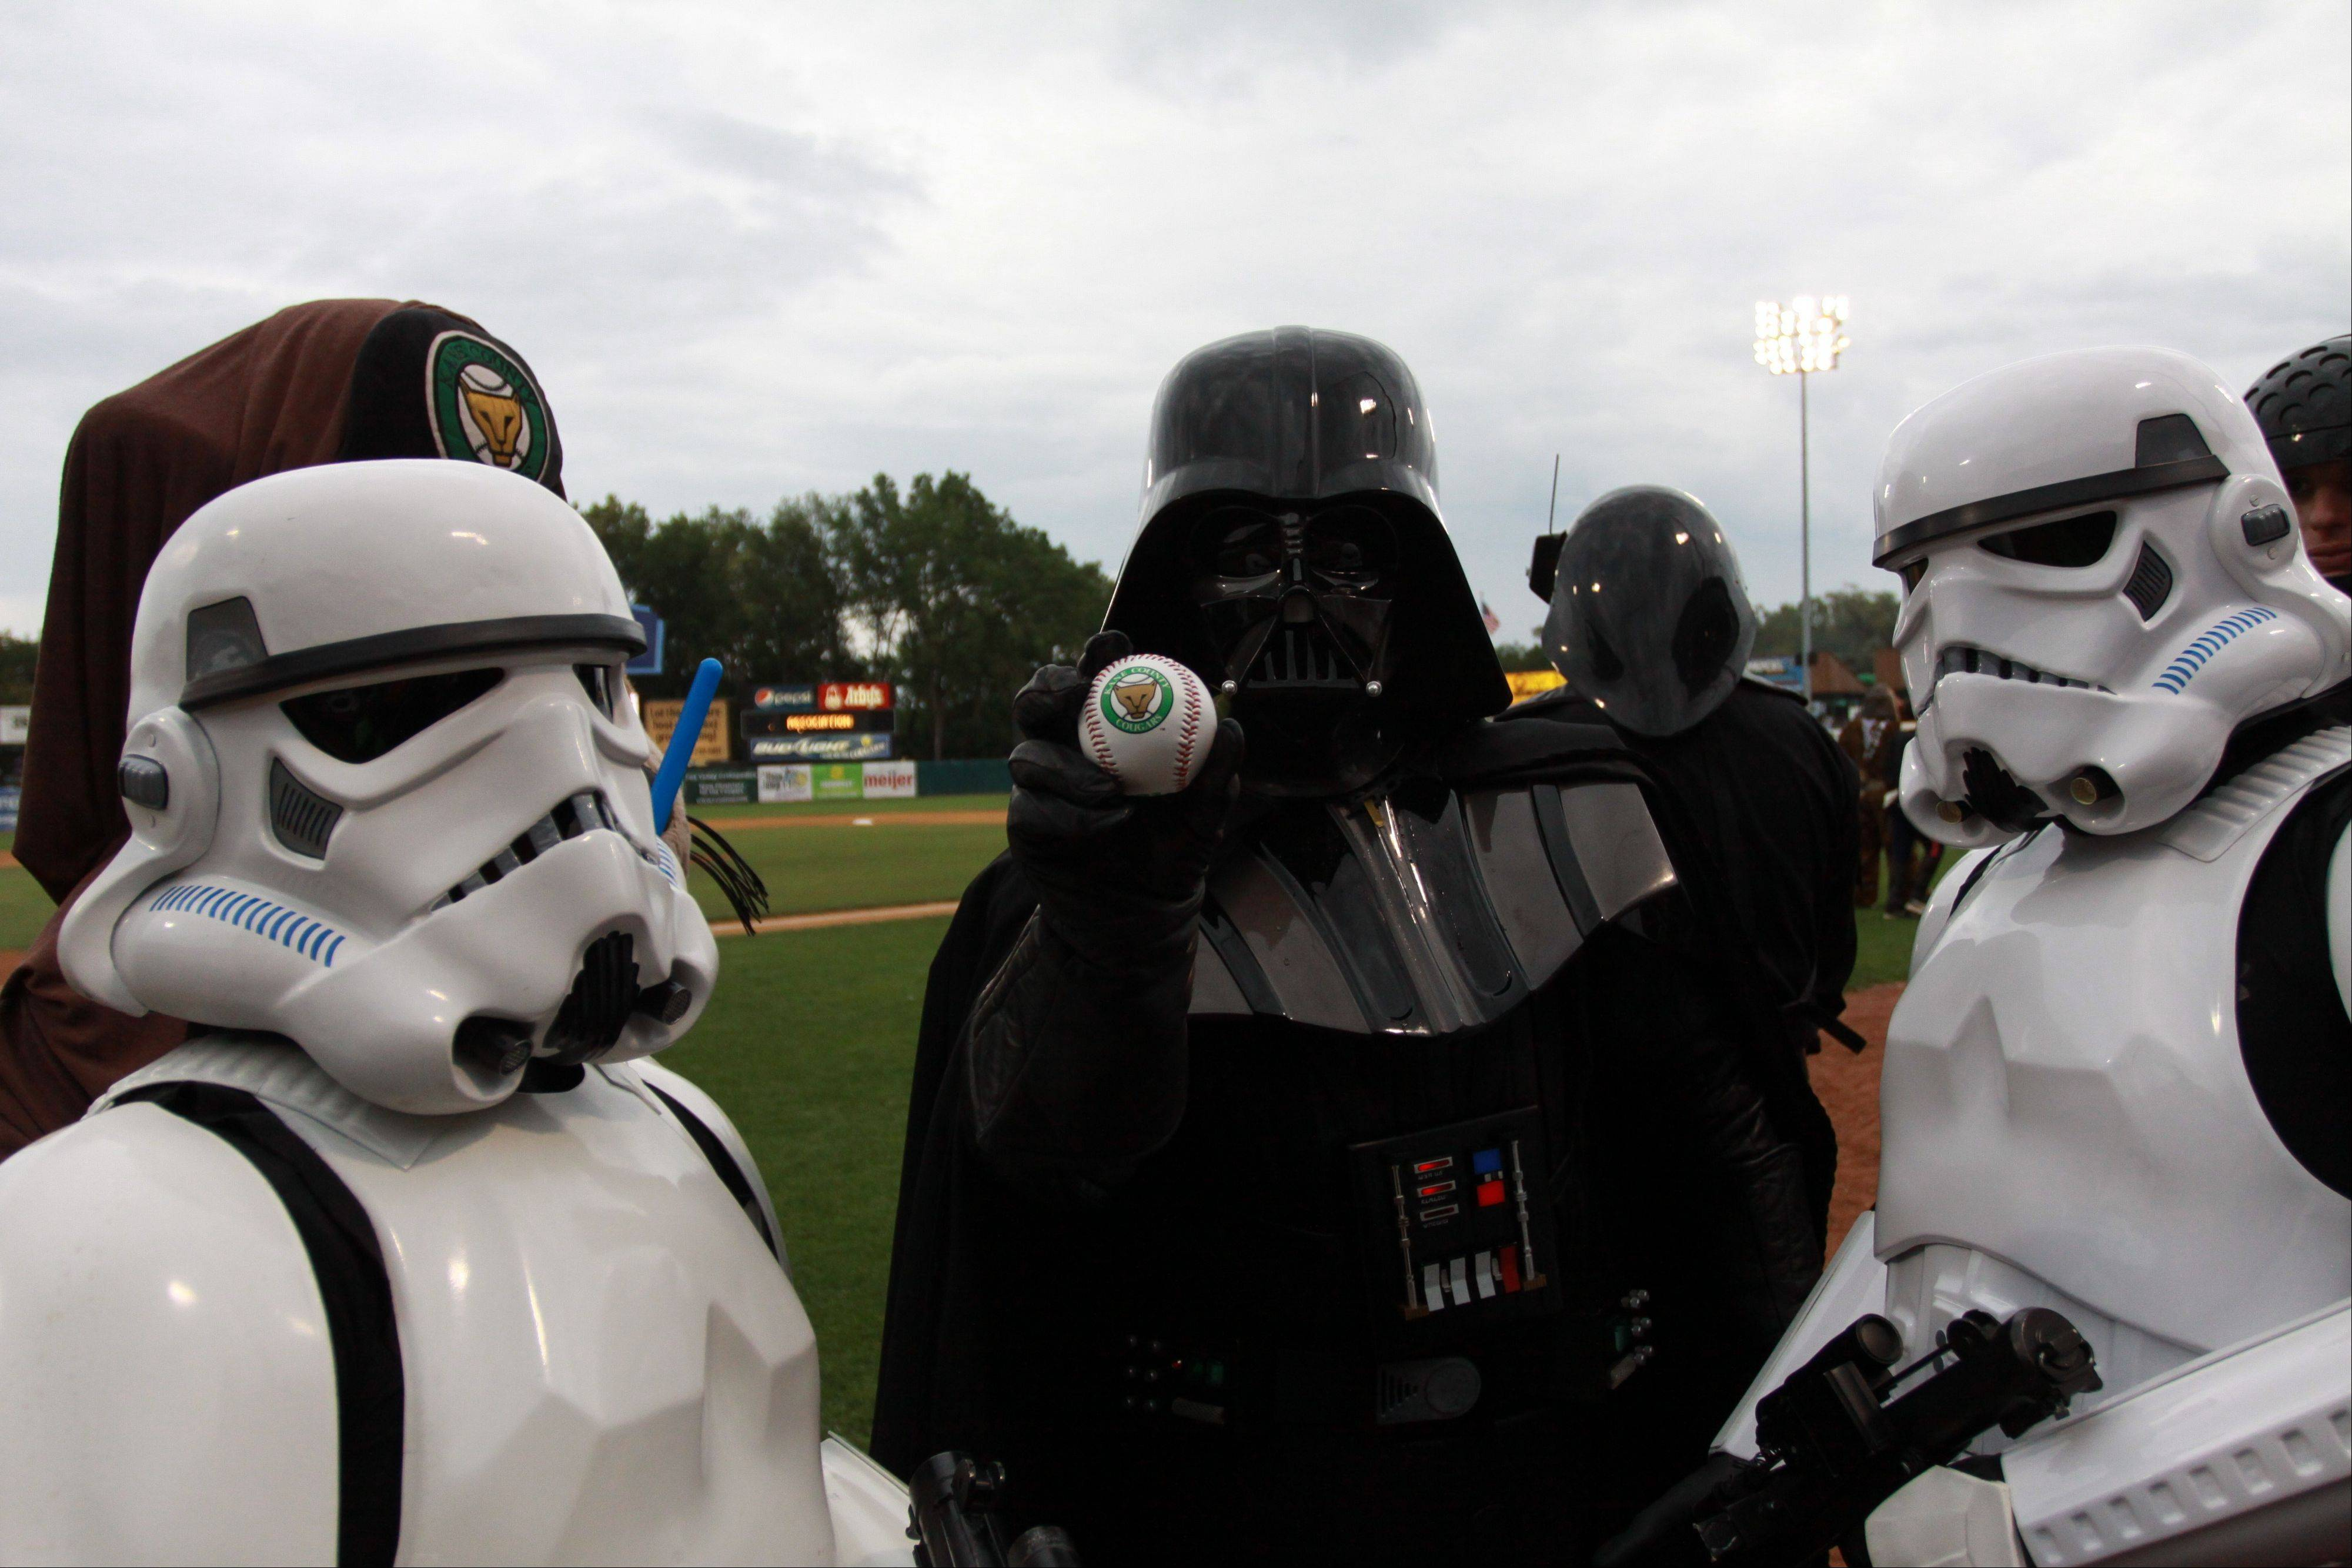 The Kane County Cougars host Star Wars night Saturday, Aug. 31, in Geneva.